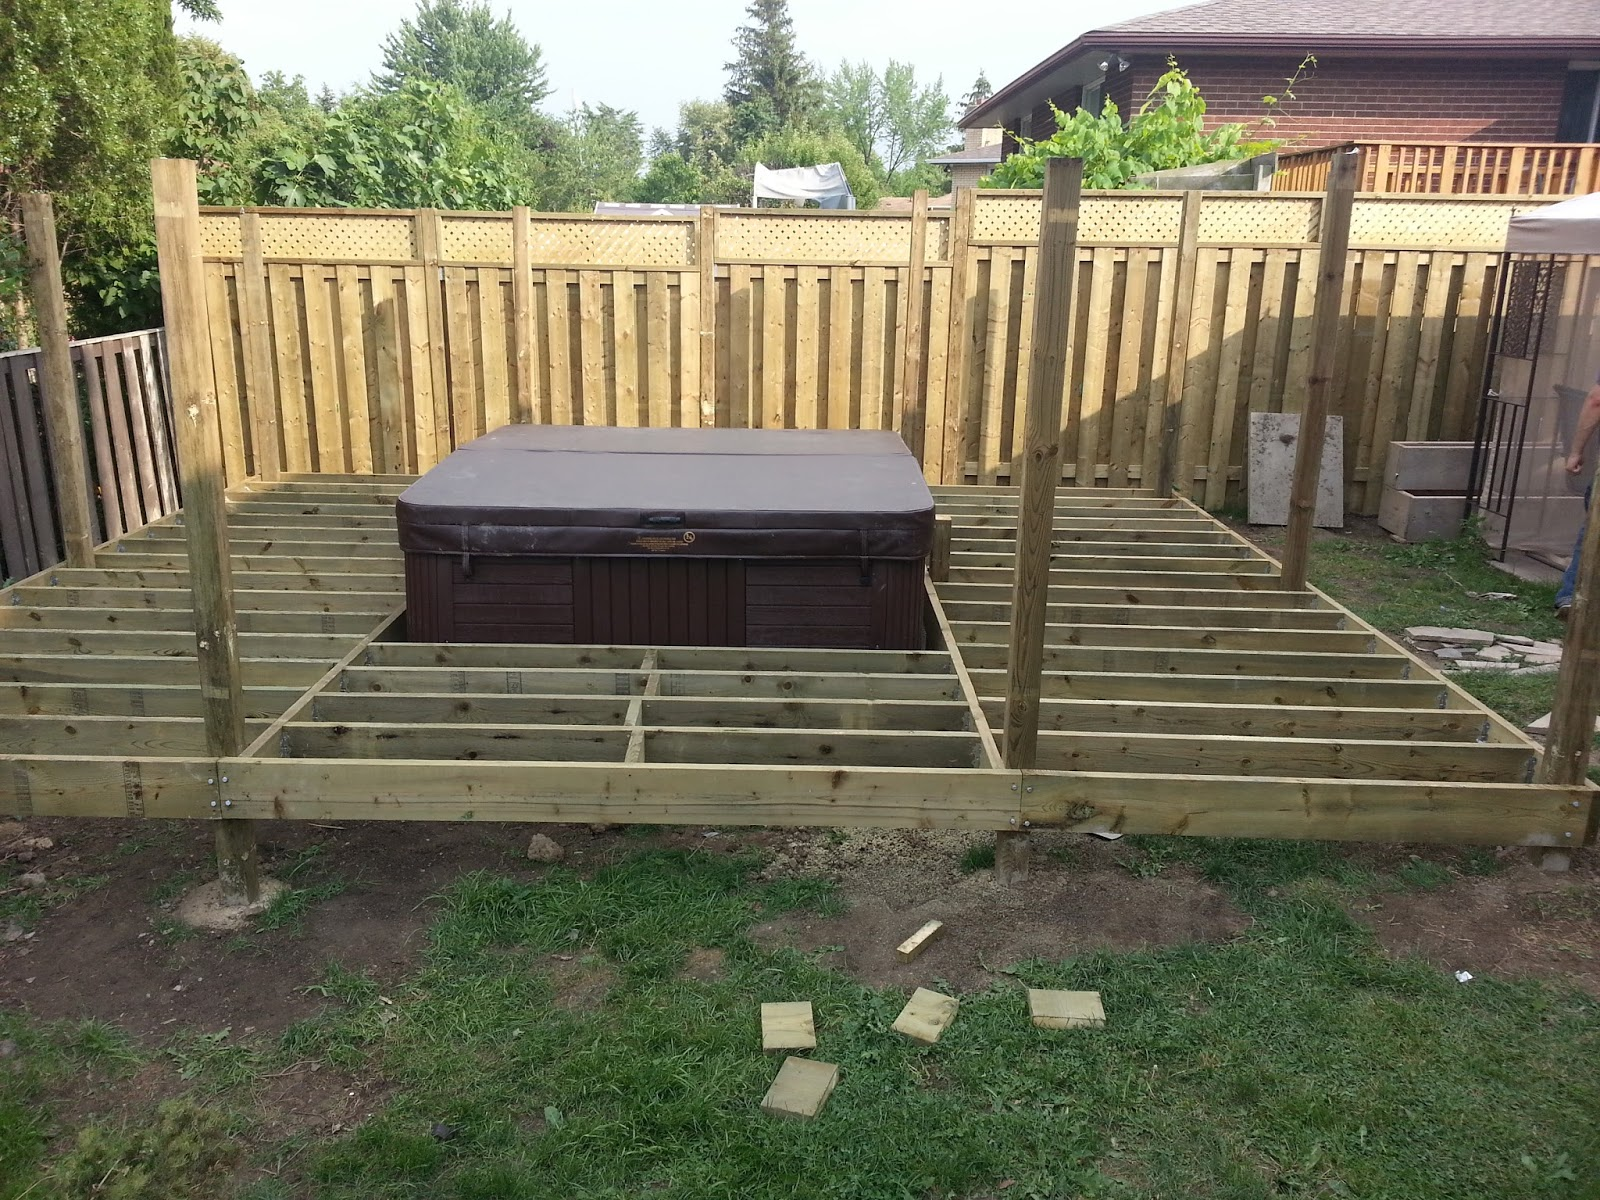 Do It Yourself Builds: How to Build a Deck (with a Hot Tub in the ...